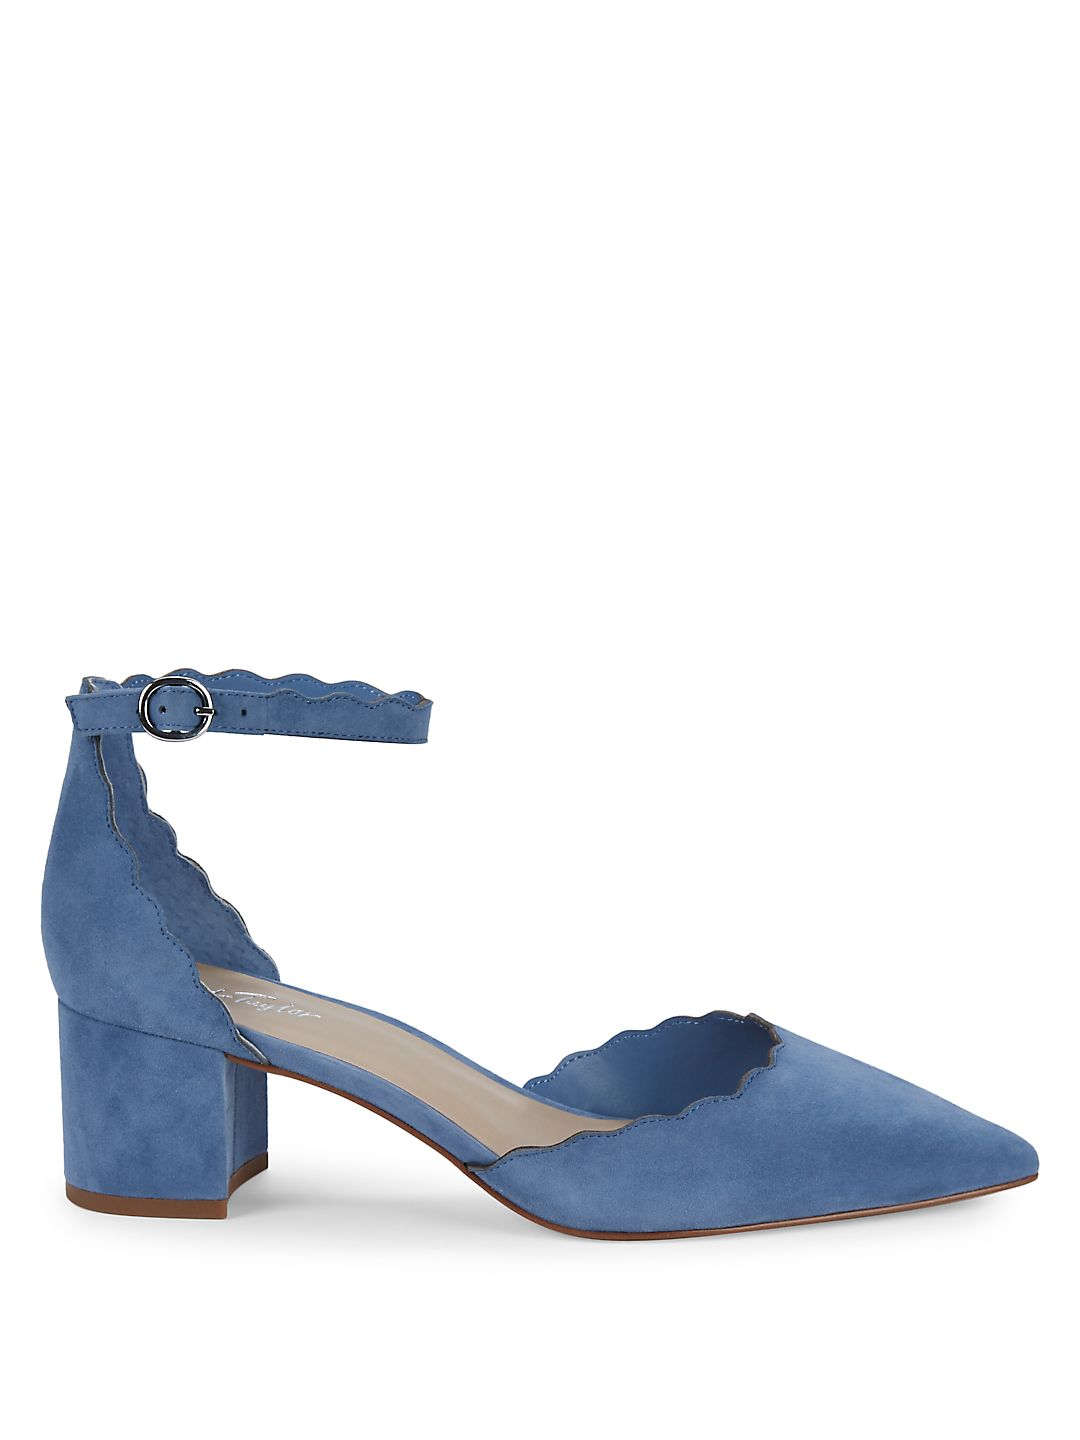 14370f8695 Lord & Taylor - Madia Scalloped Cutout Suede Pumps - Walmart.com